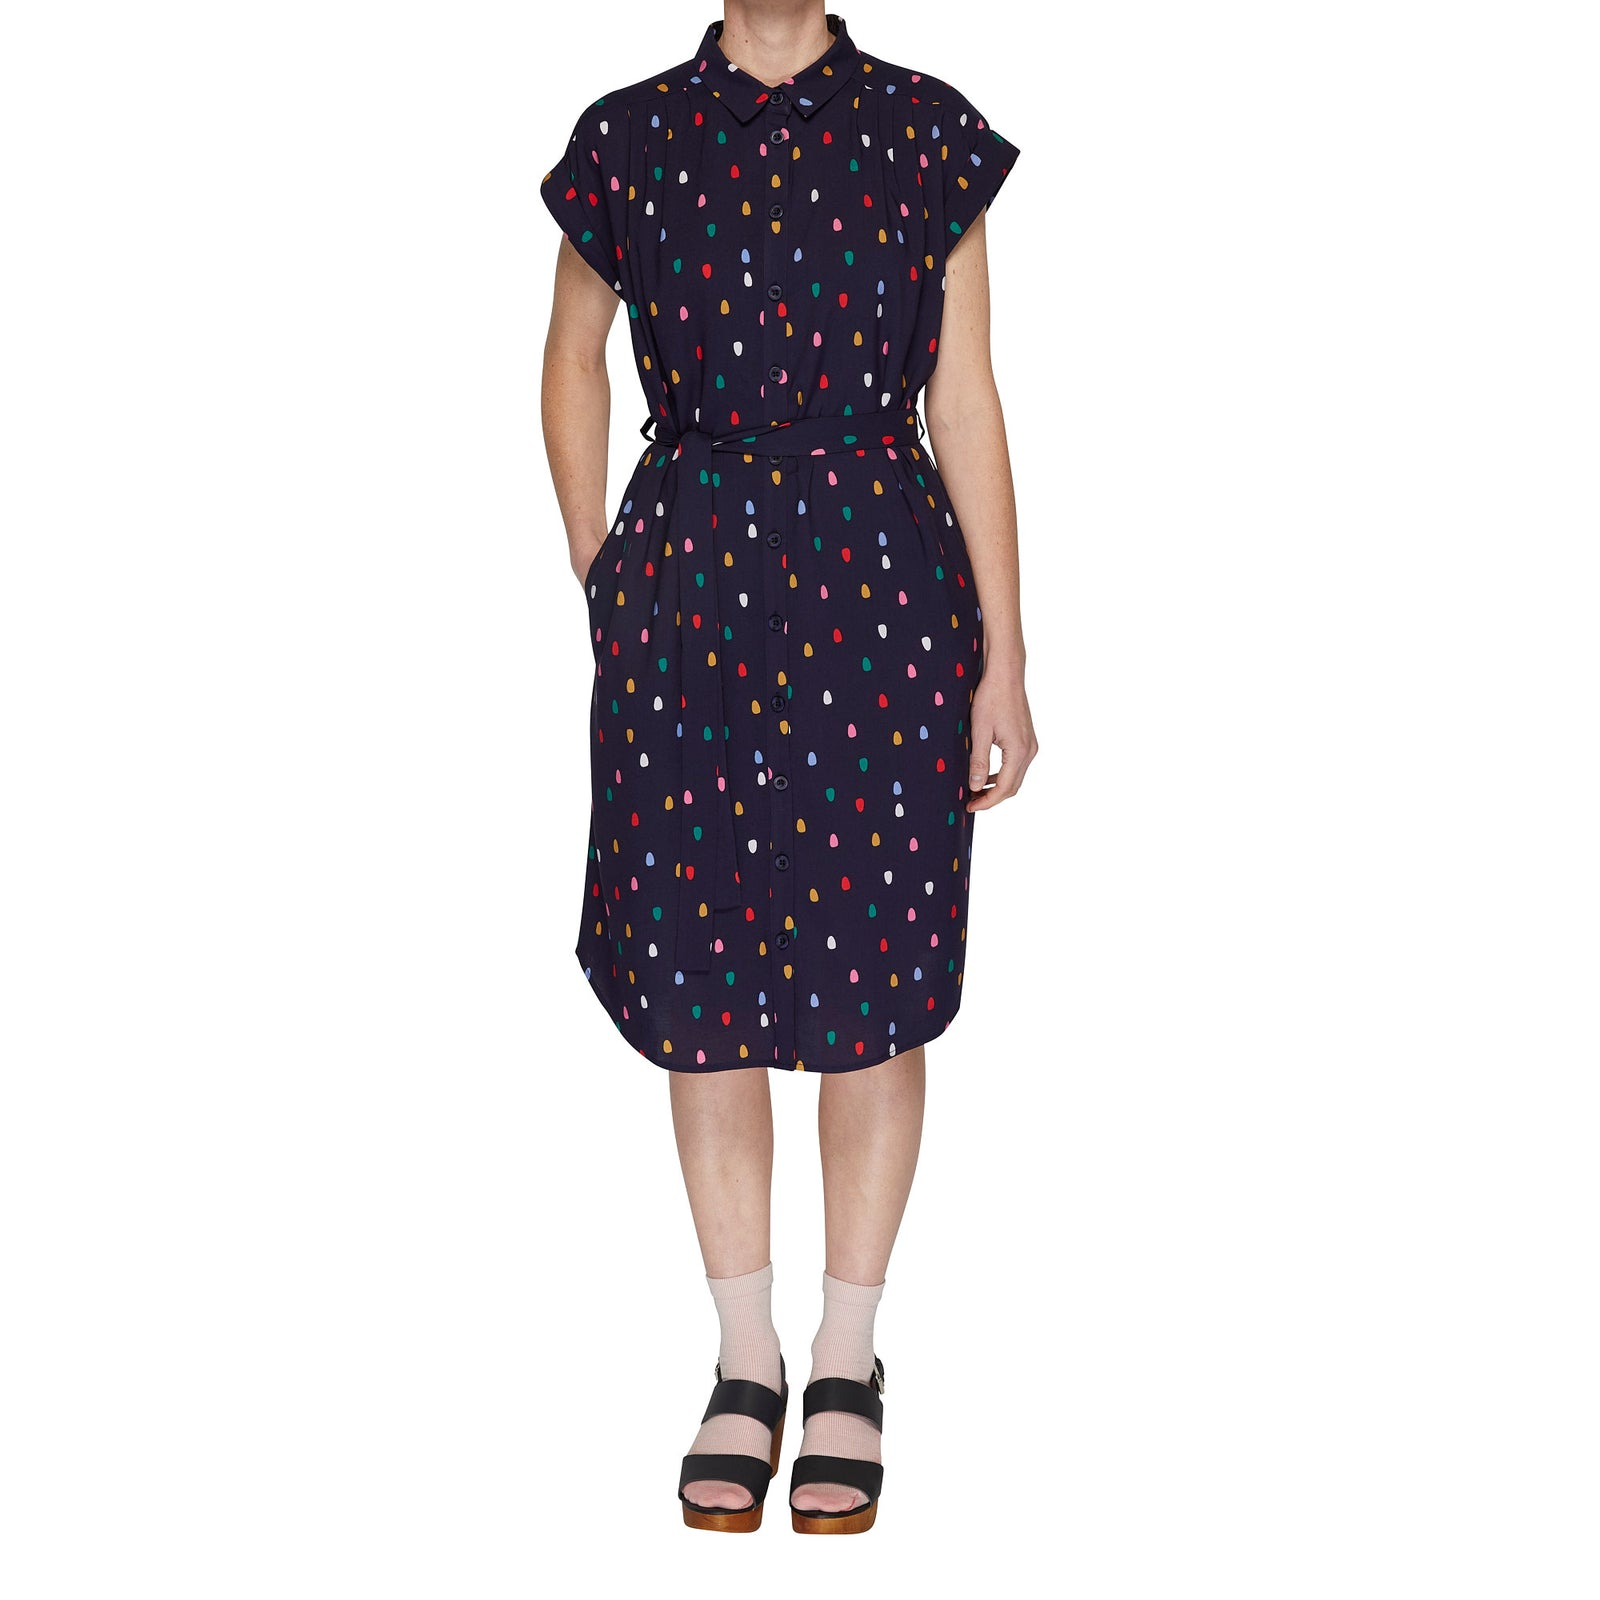 Button through dress - Spots